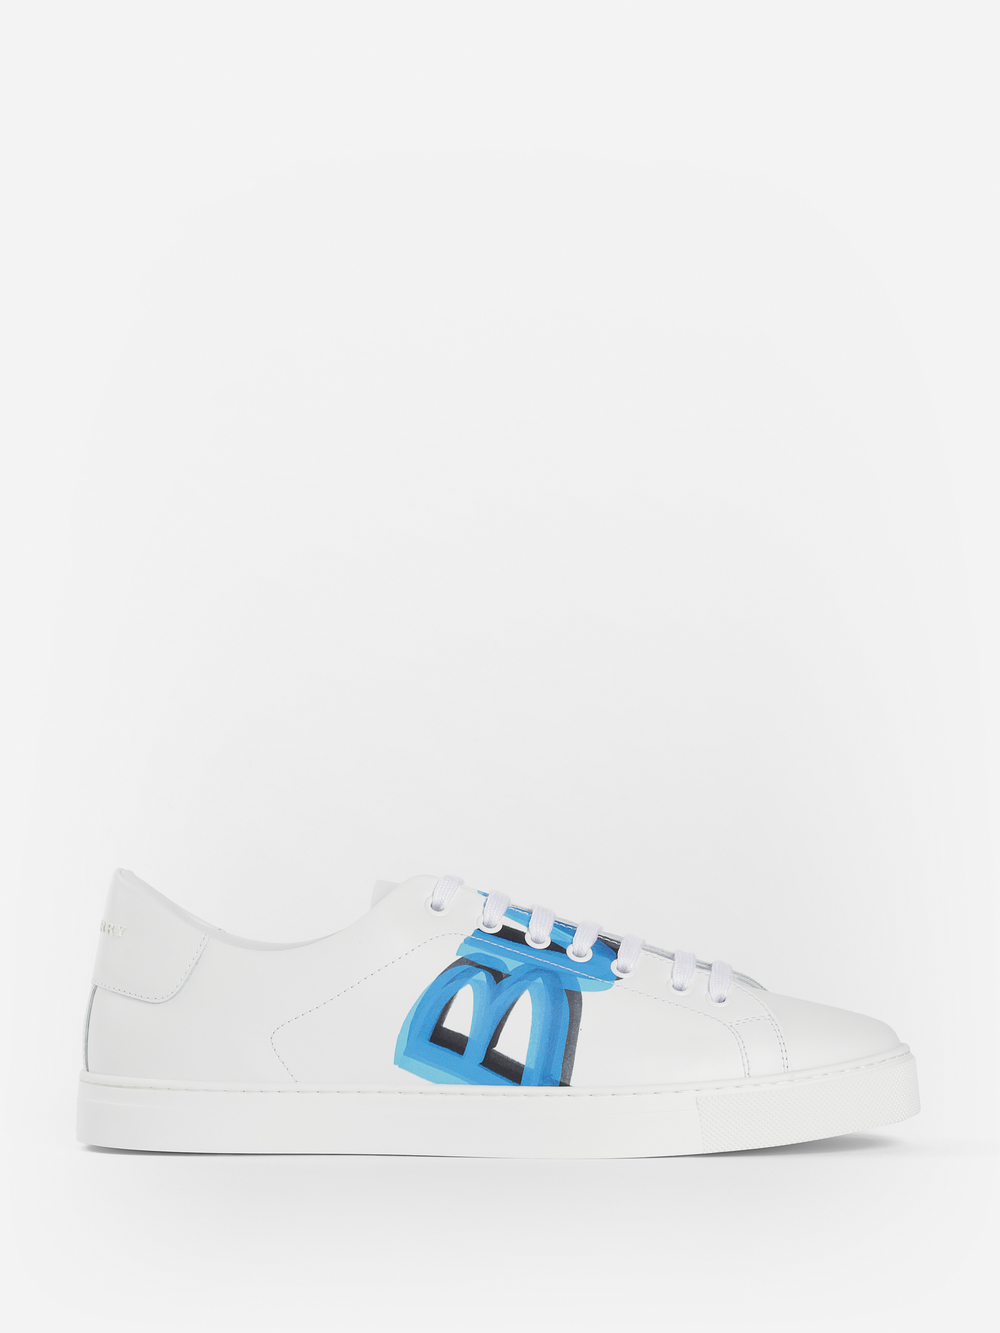 Burberry - Sneakers - Antonioli.eu 29365a9a4